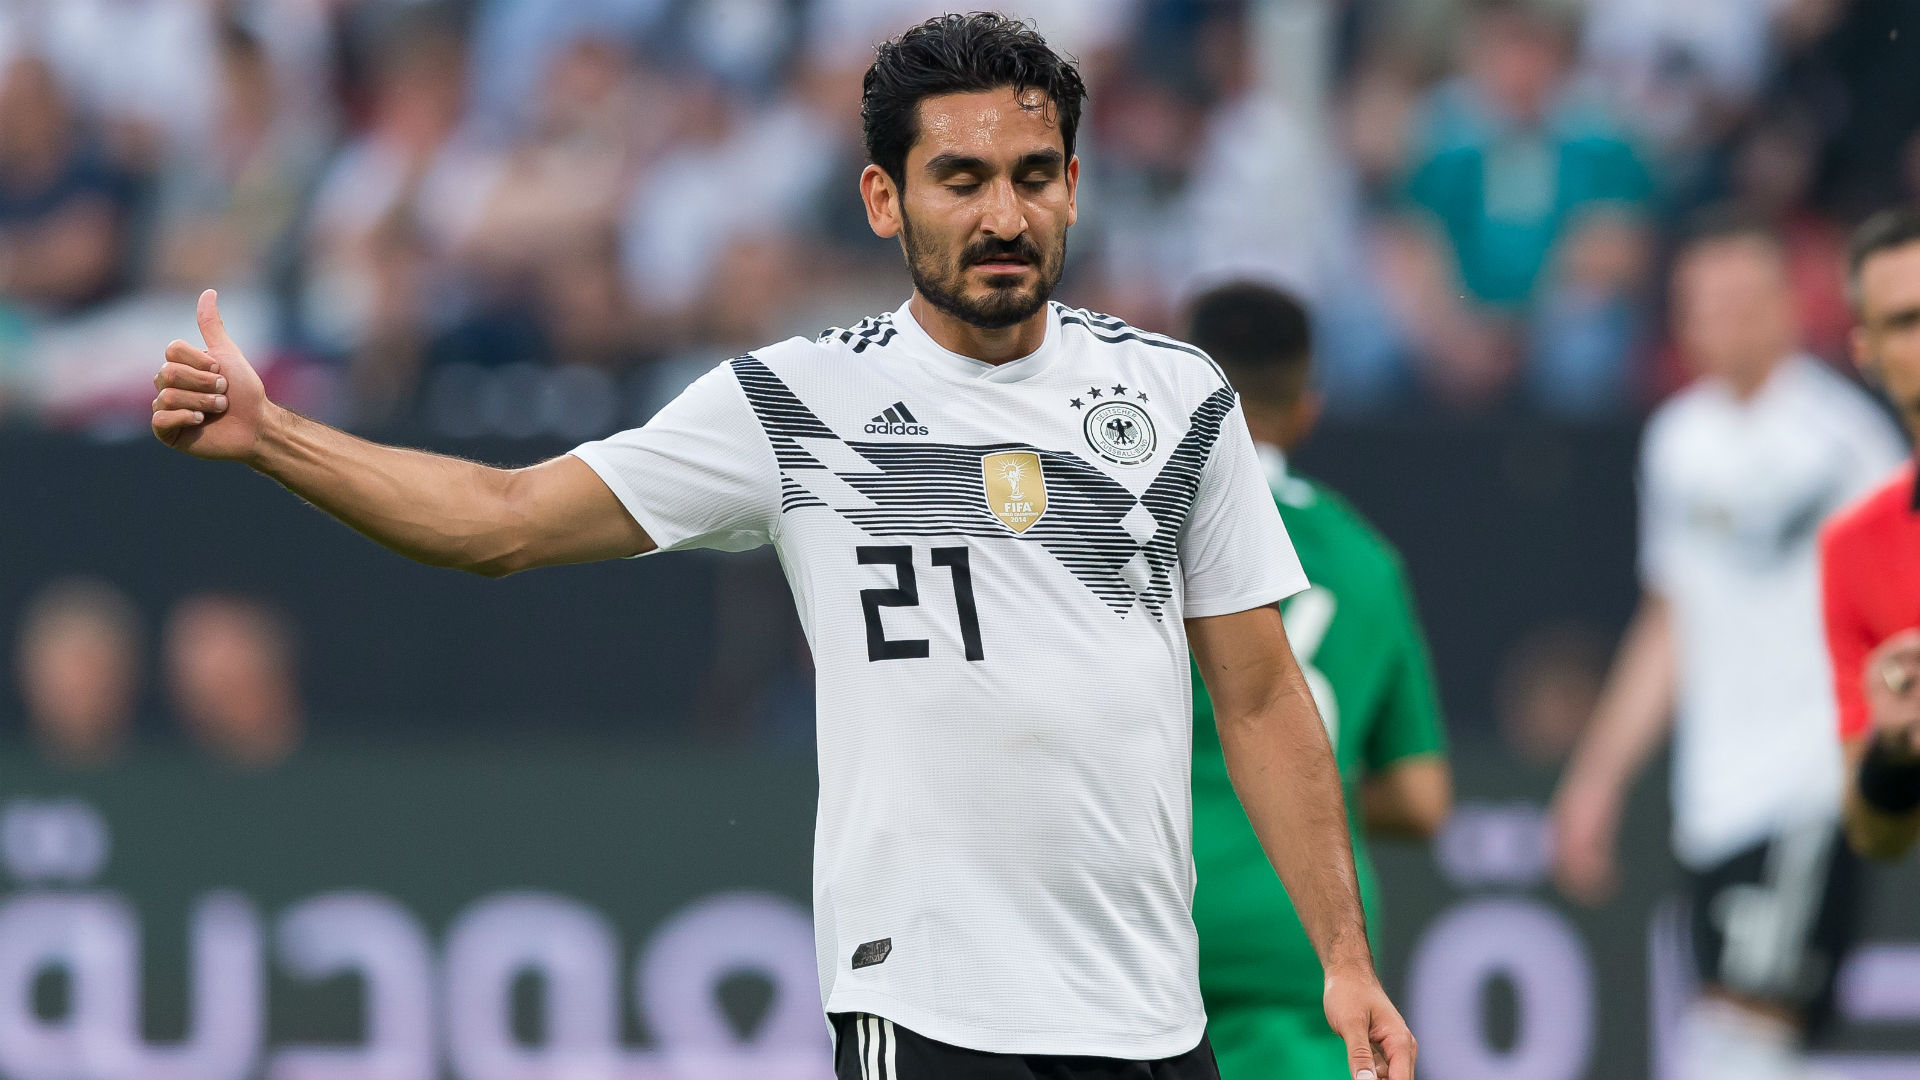 Germany's Ilkay Gundogan booed in World Cup warmup vs Saudi Arabia